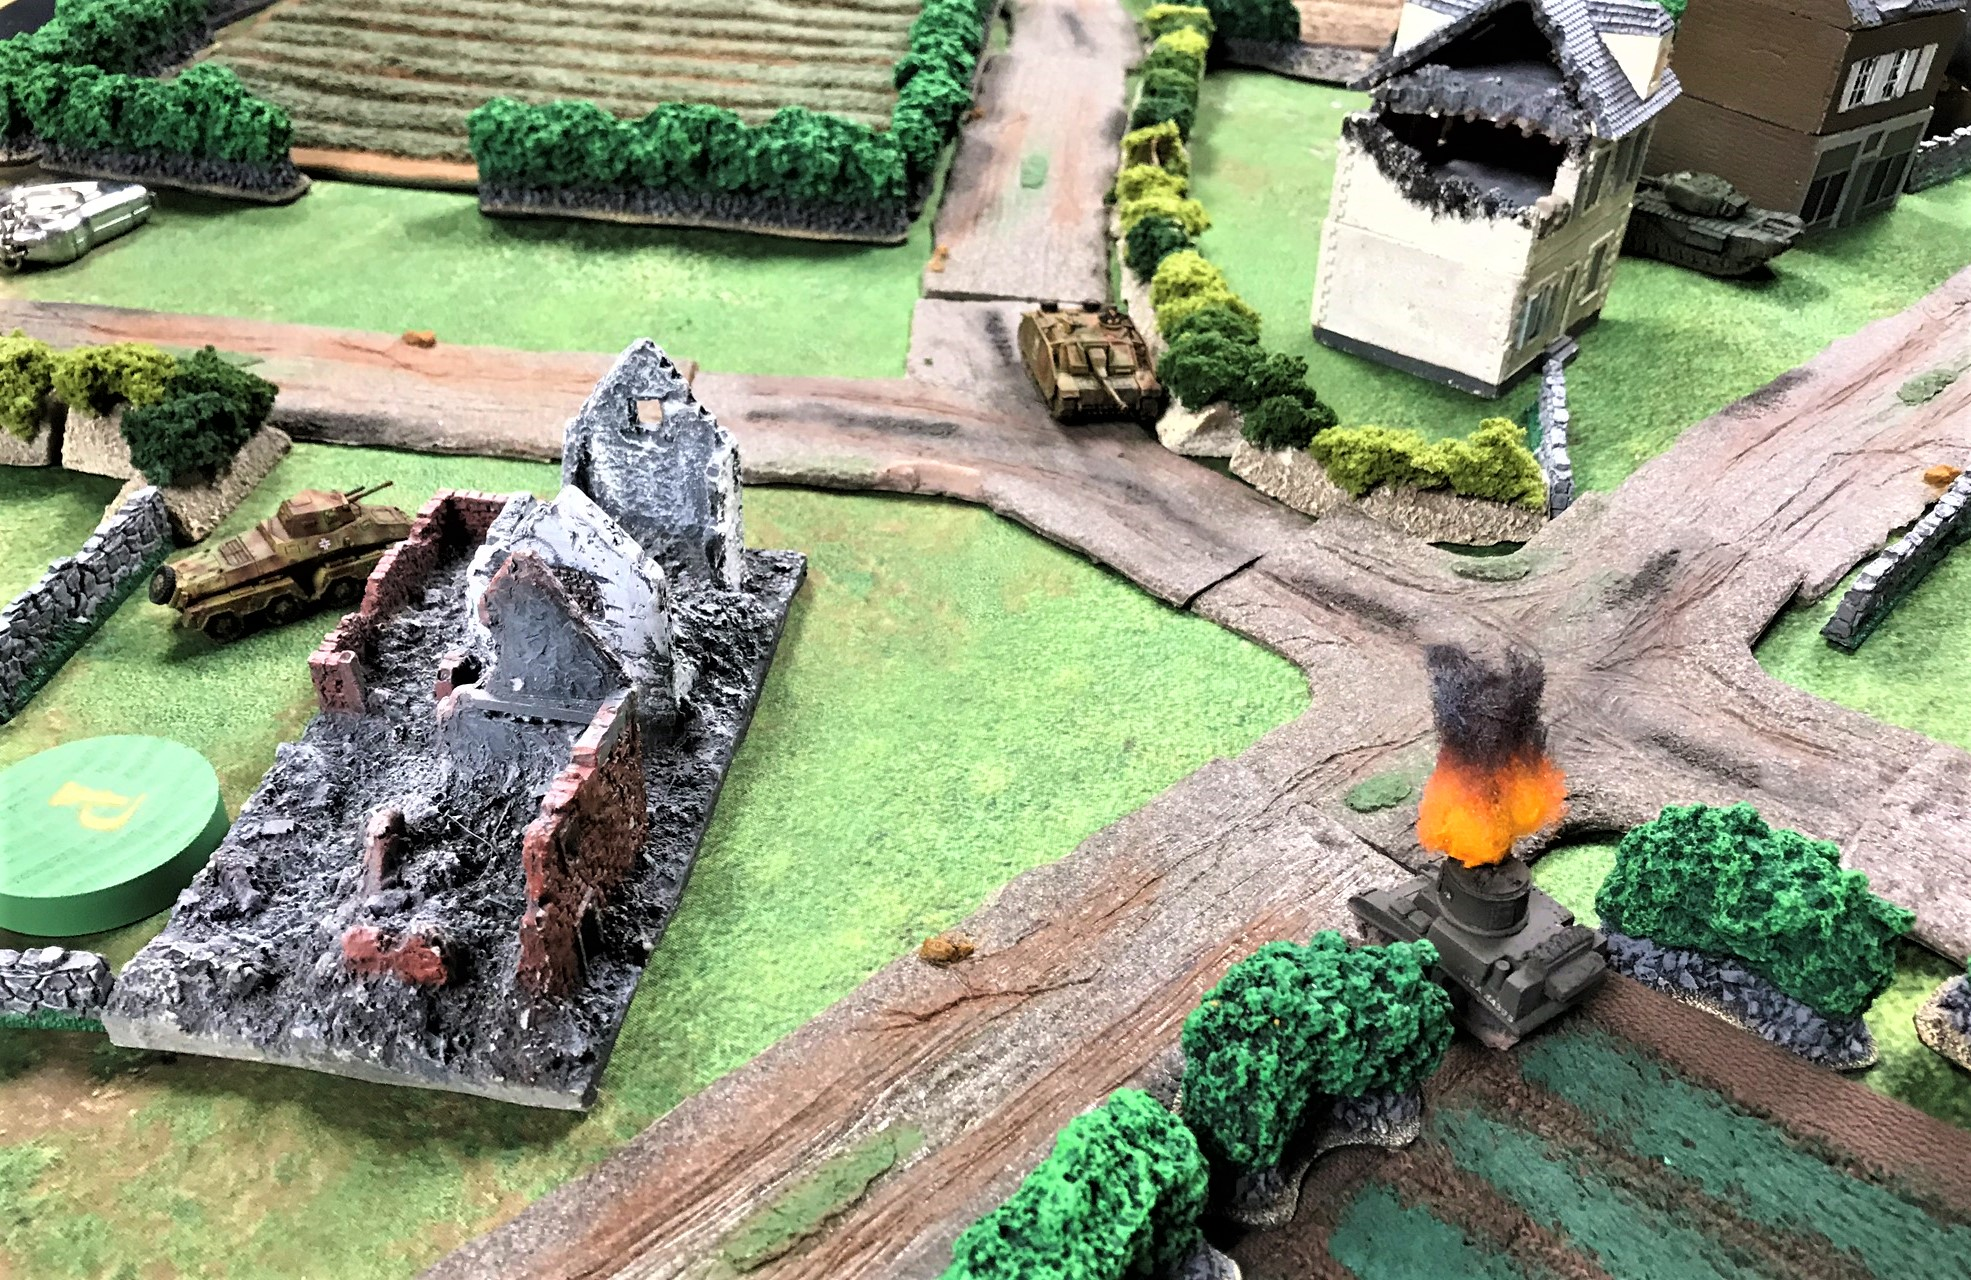 3 StuG IIIG takes out M5, while Churchill moves around Panther